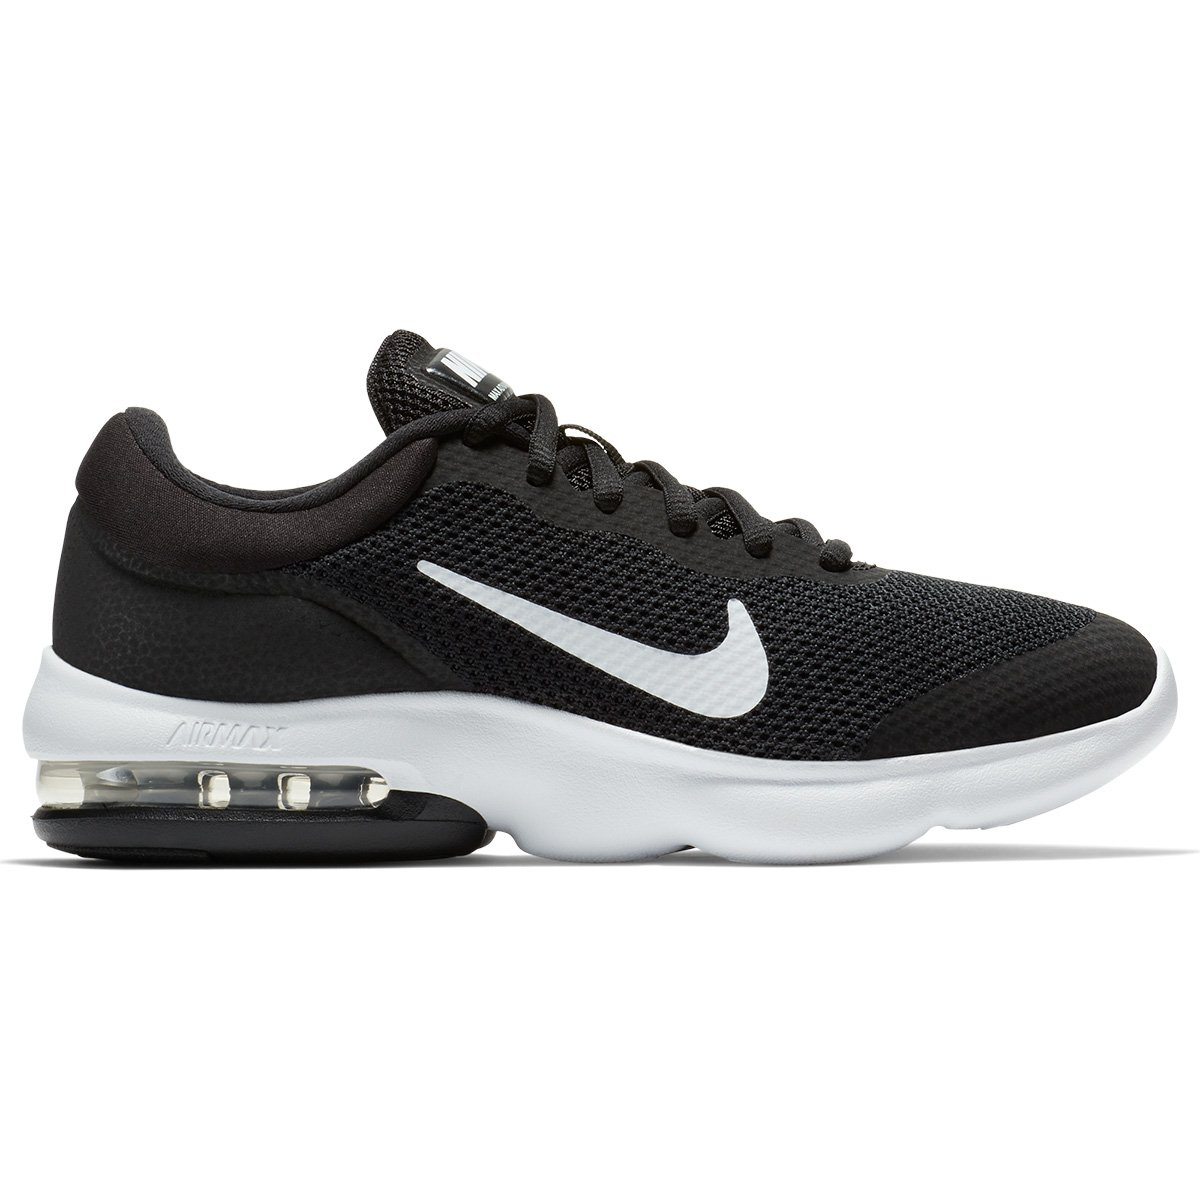 hot sale online a3cd5 80893 Tênis Nike Air Max Advantage Feminino - Preto e Branco | Shop Timão